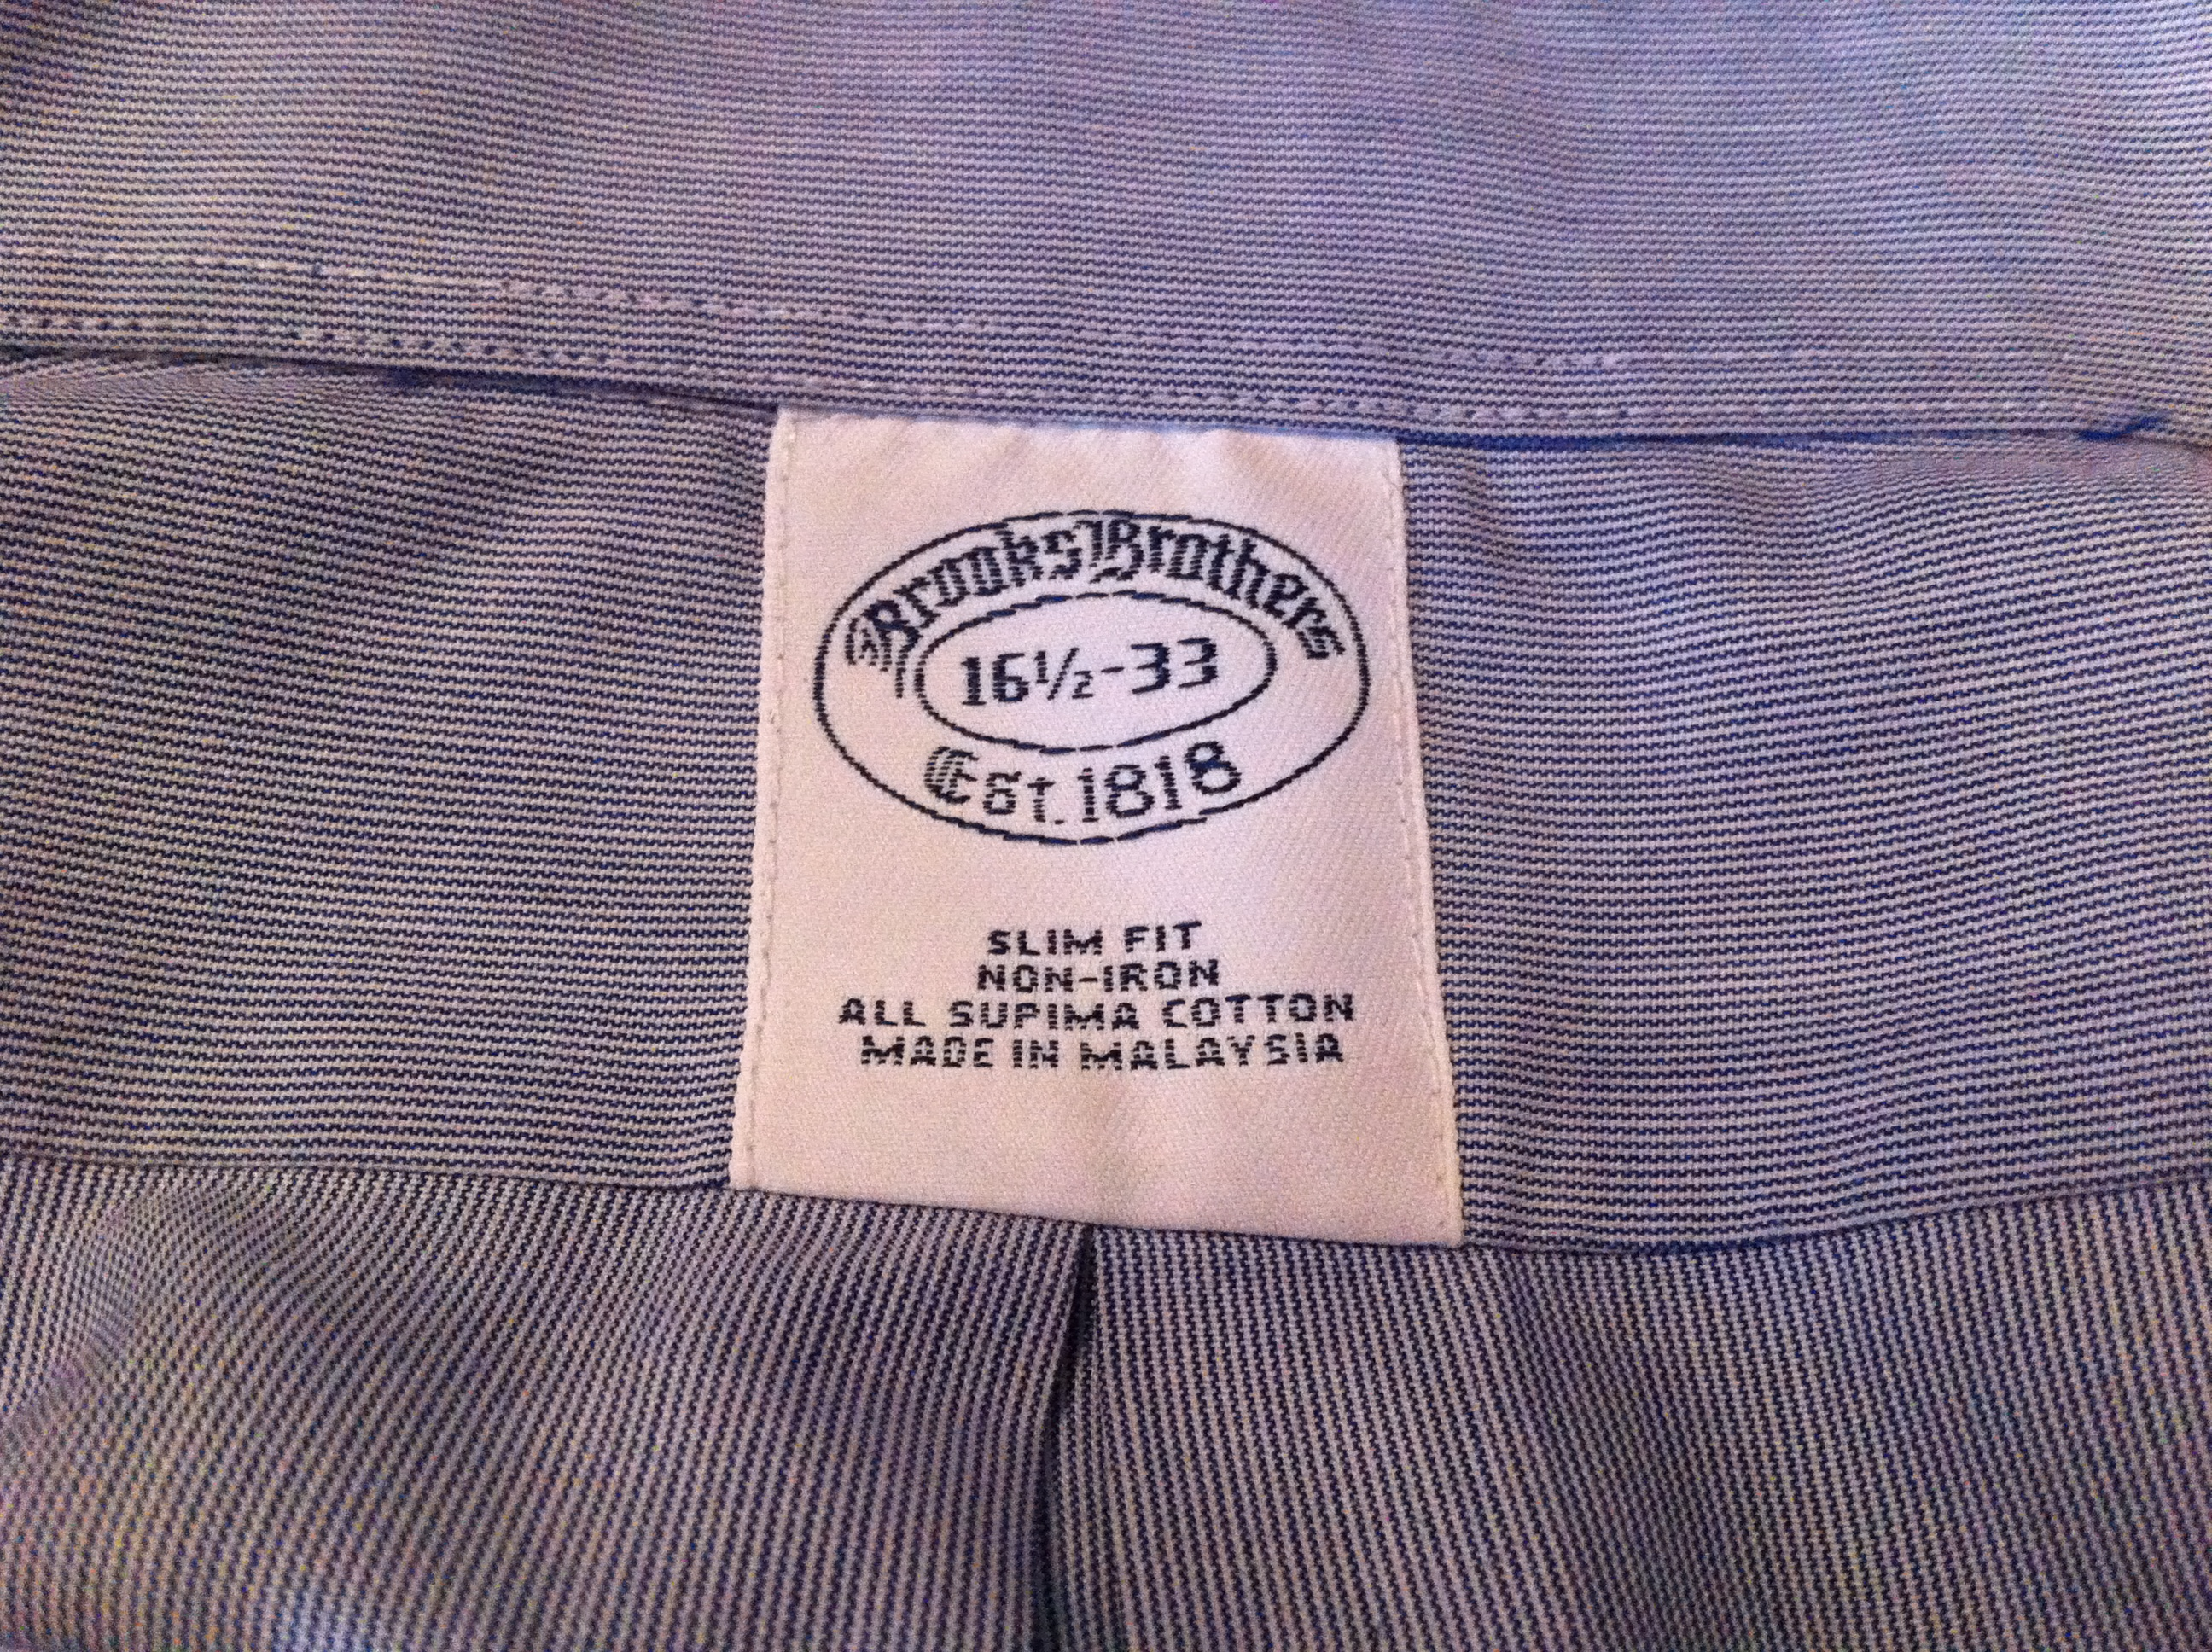 Brooks Brothers Review - this image shows the label on a Brooks Brothers  shirt 3126f28a2